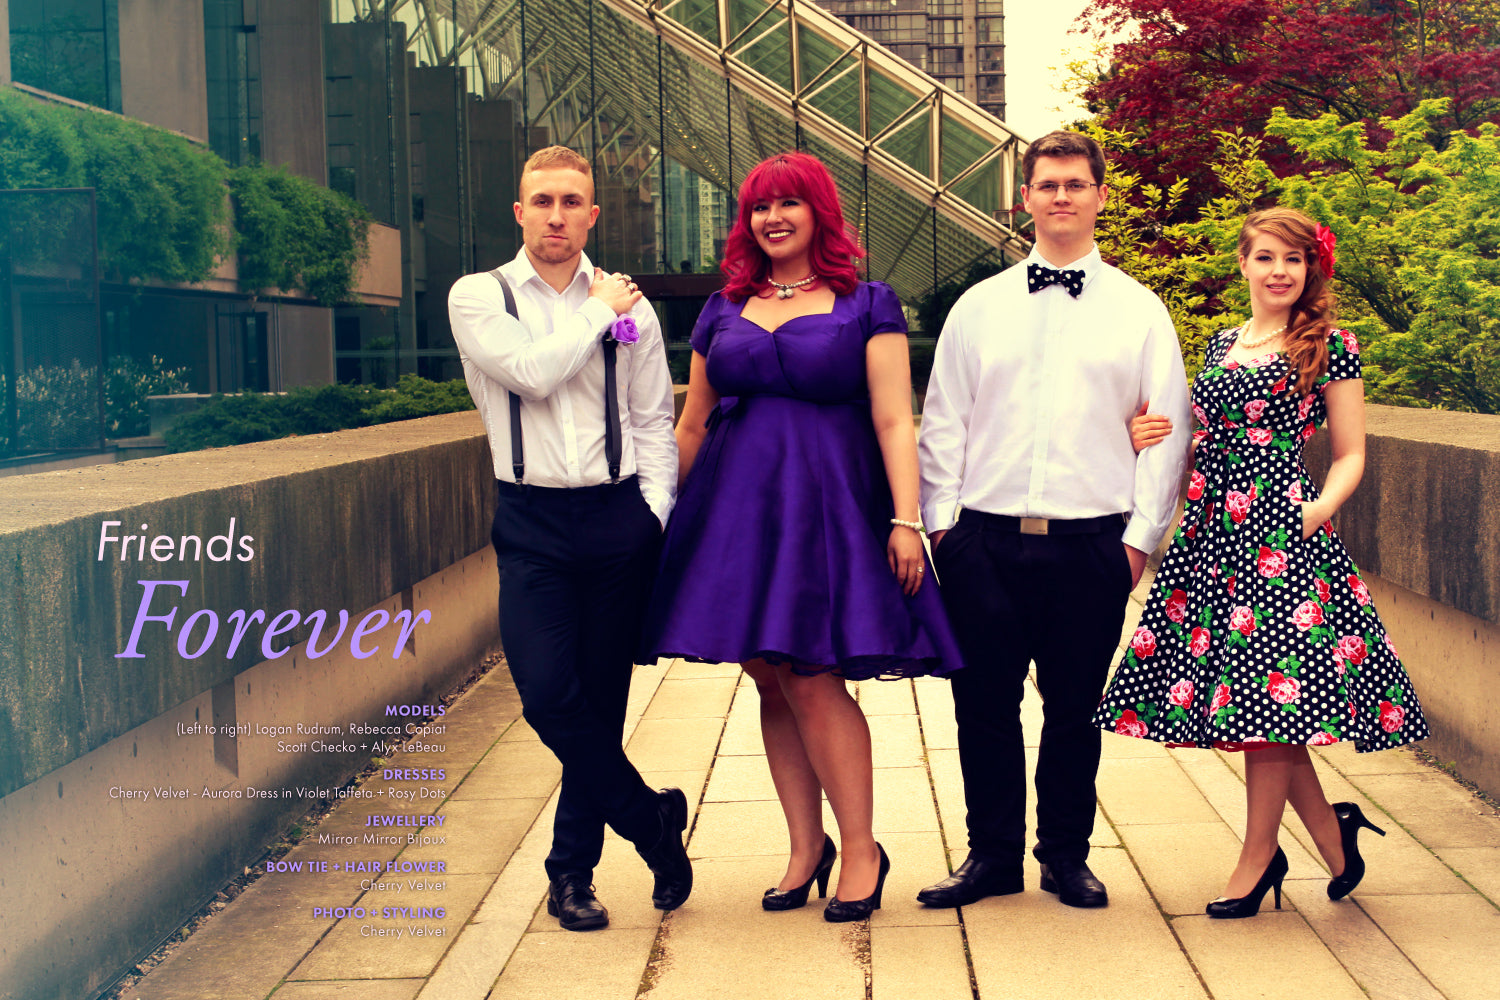 Friends Forever - Aurora Dress in Violet Taffeta + Rosy Dots